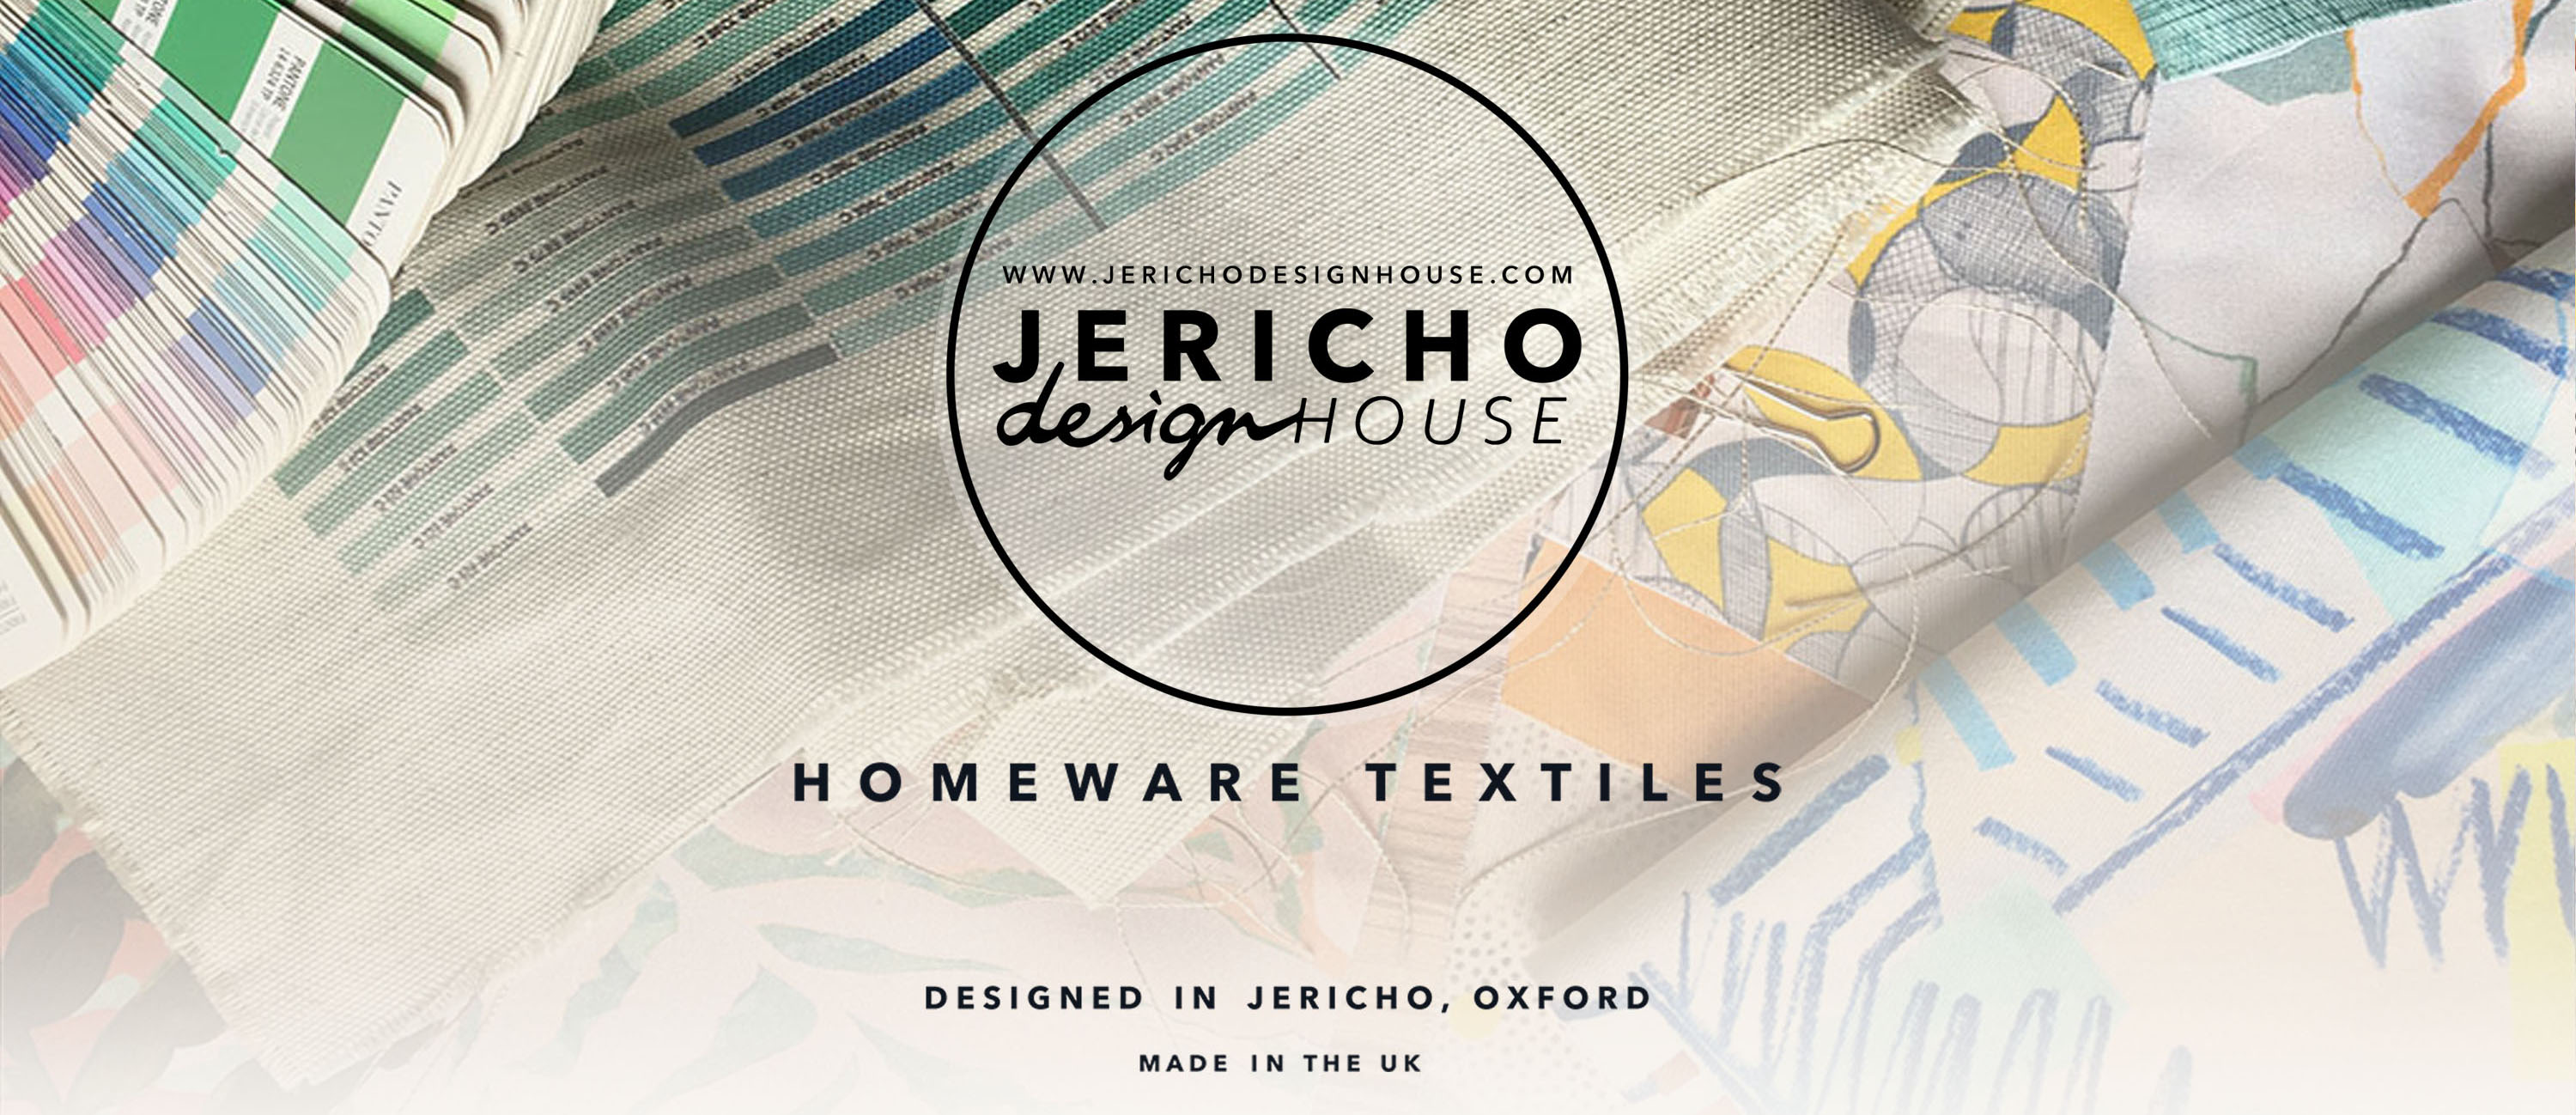 Jericho Design House Oxford Homeware Textiles Fabrics Prints Designed in Jericho Made in the UK